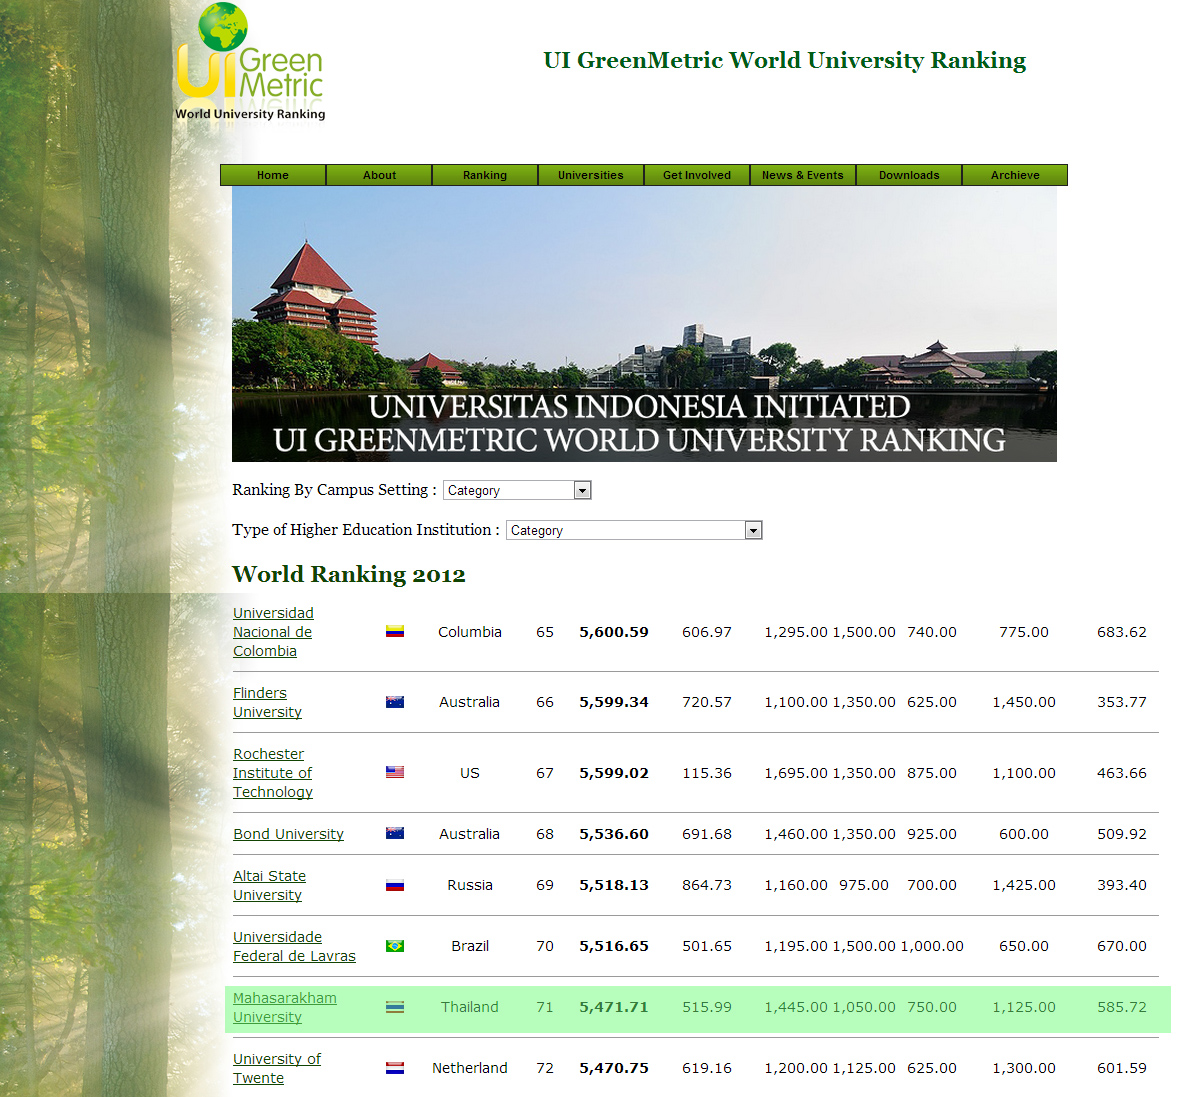 Soaring High for MSU @ UI GreenMetric World University Ranking